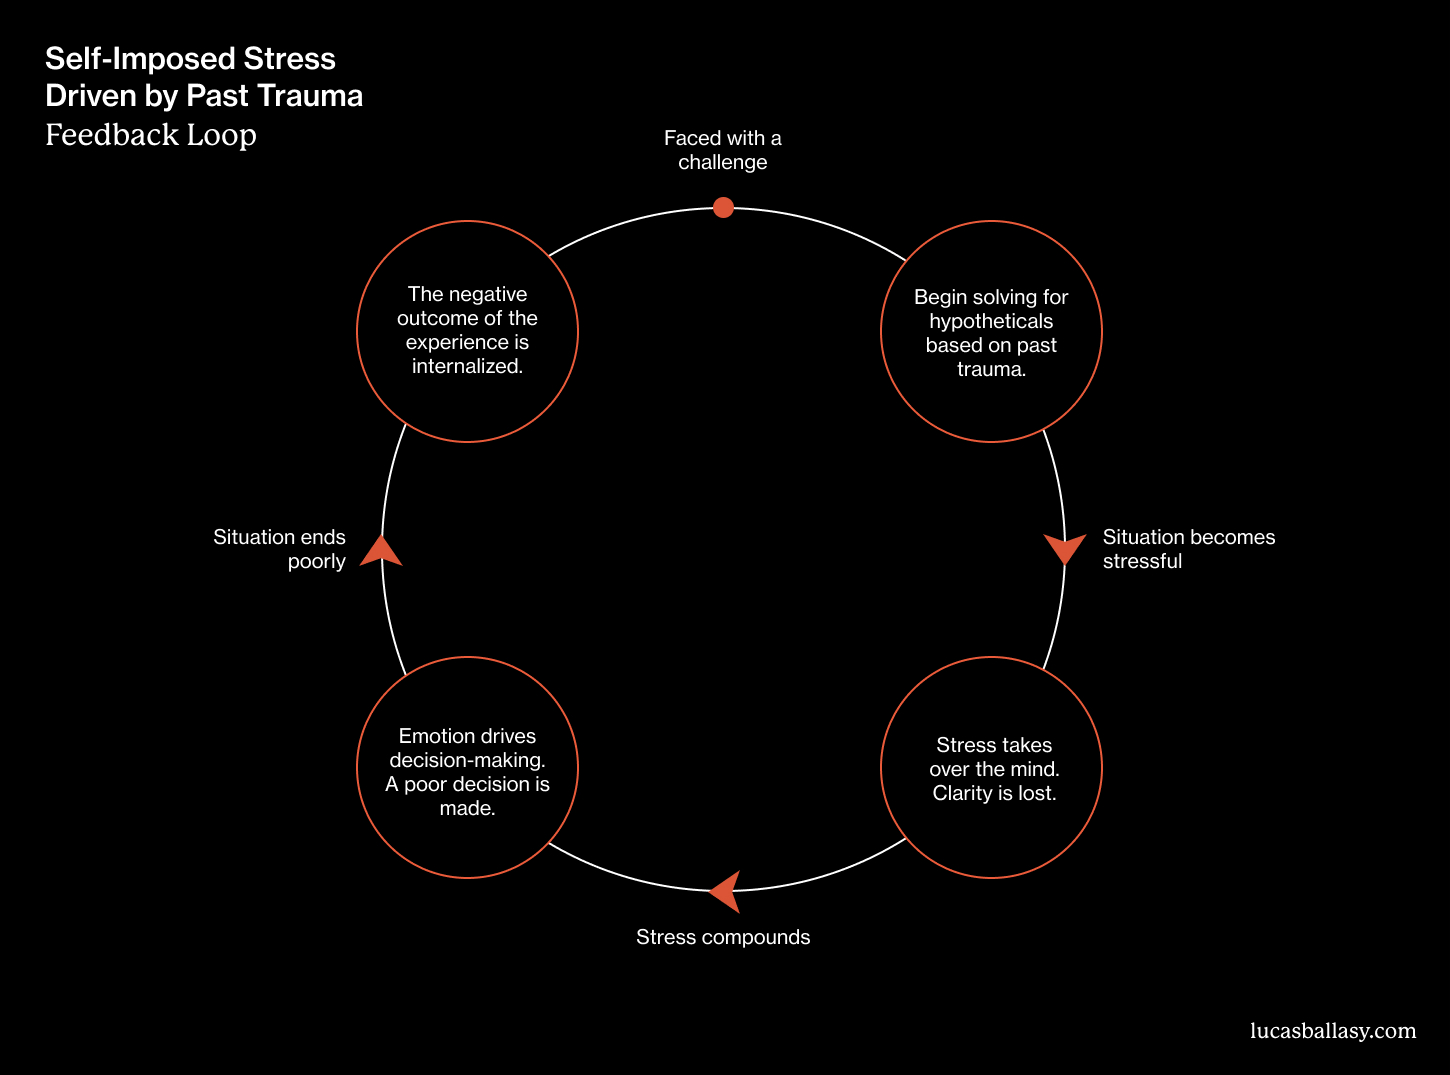 Visualization to show the feedback loop of self-imposed stress driven by past trauma.